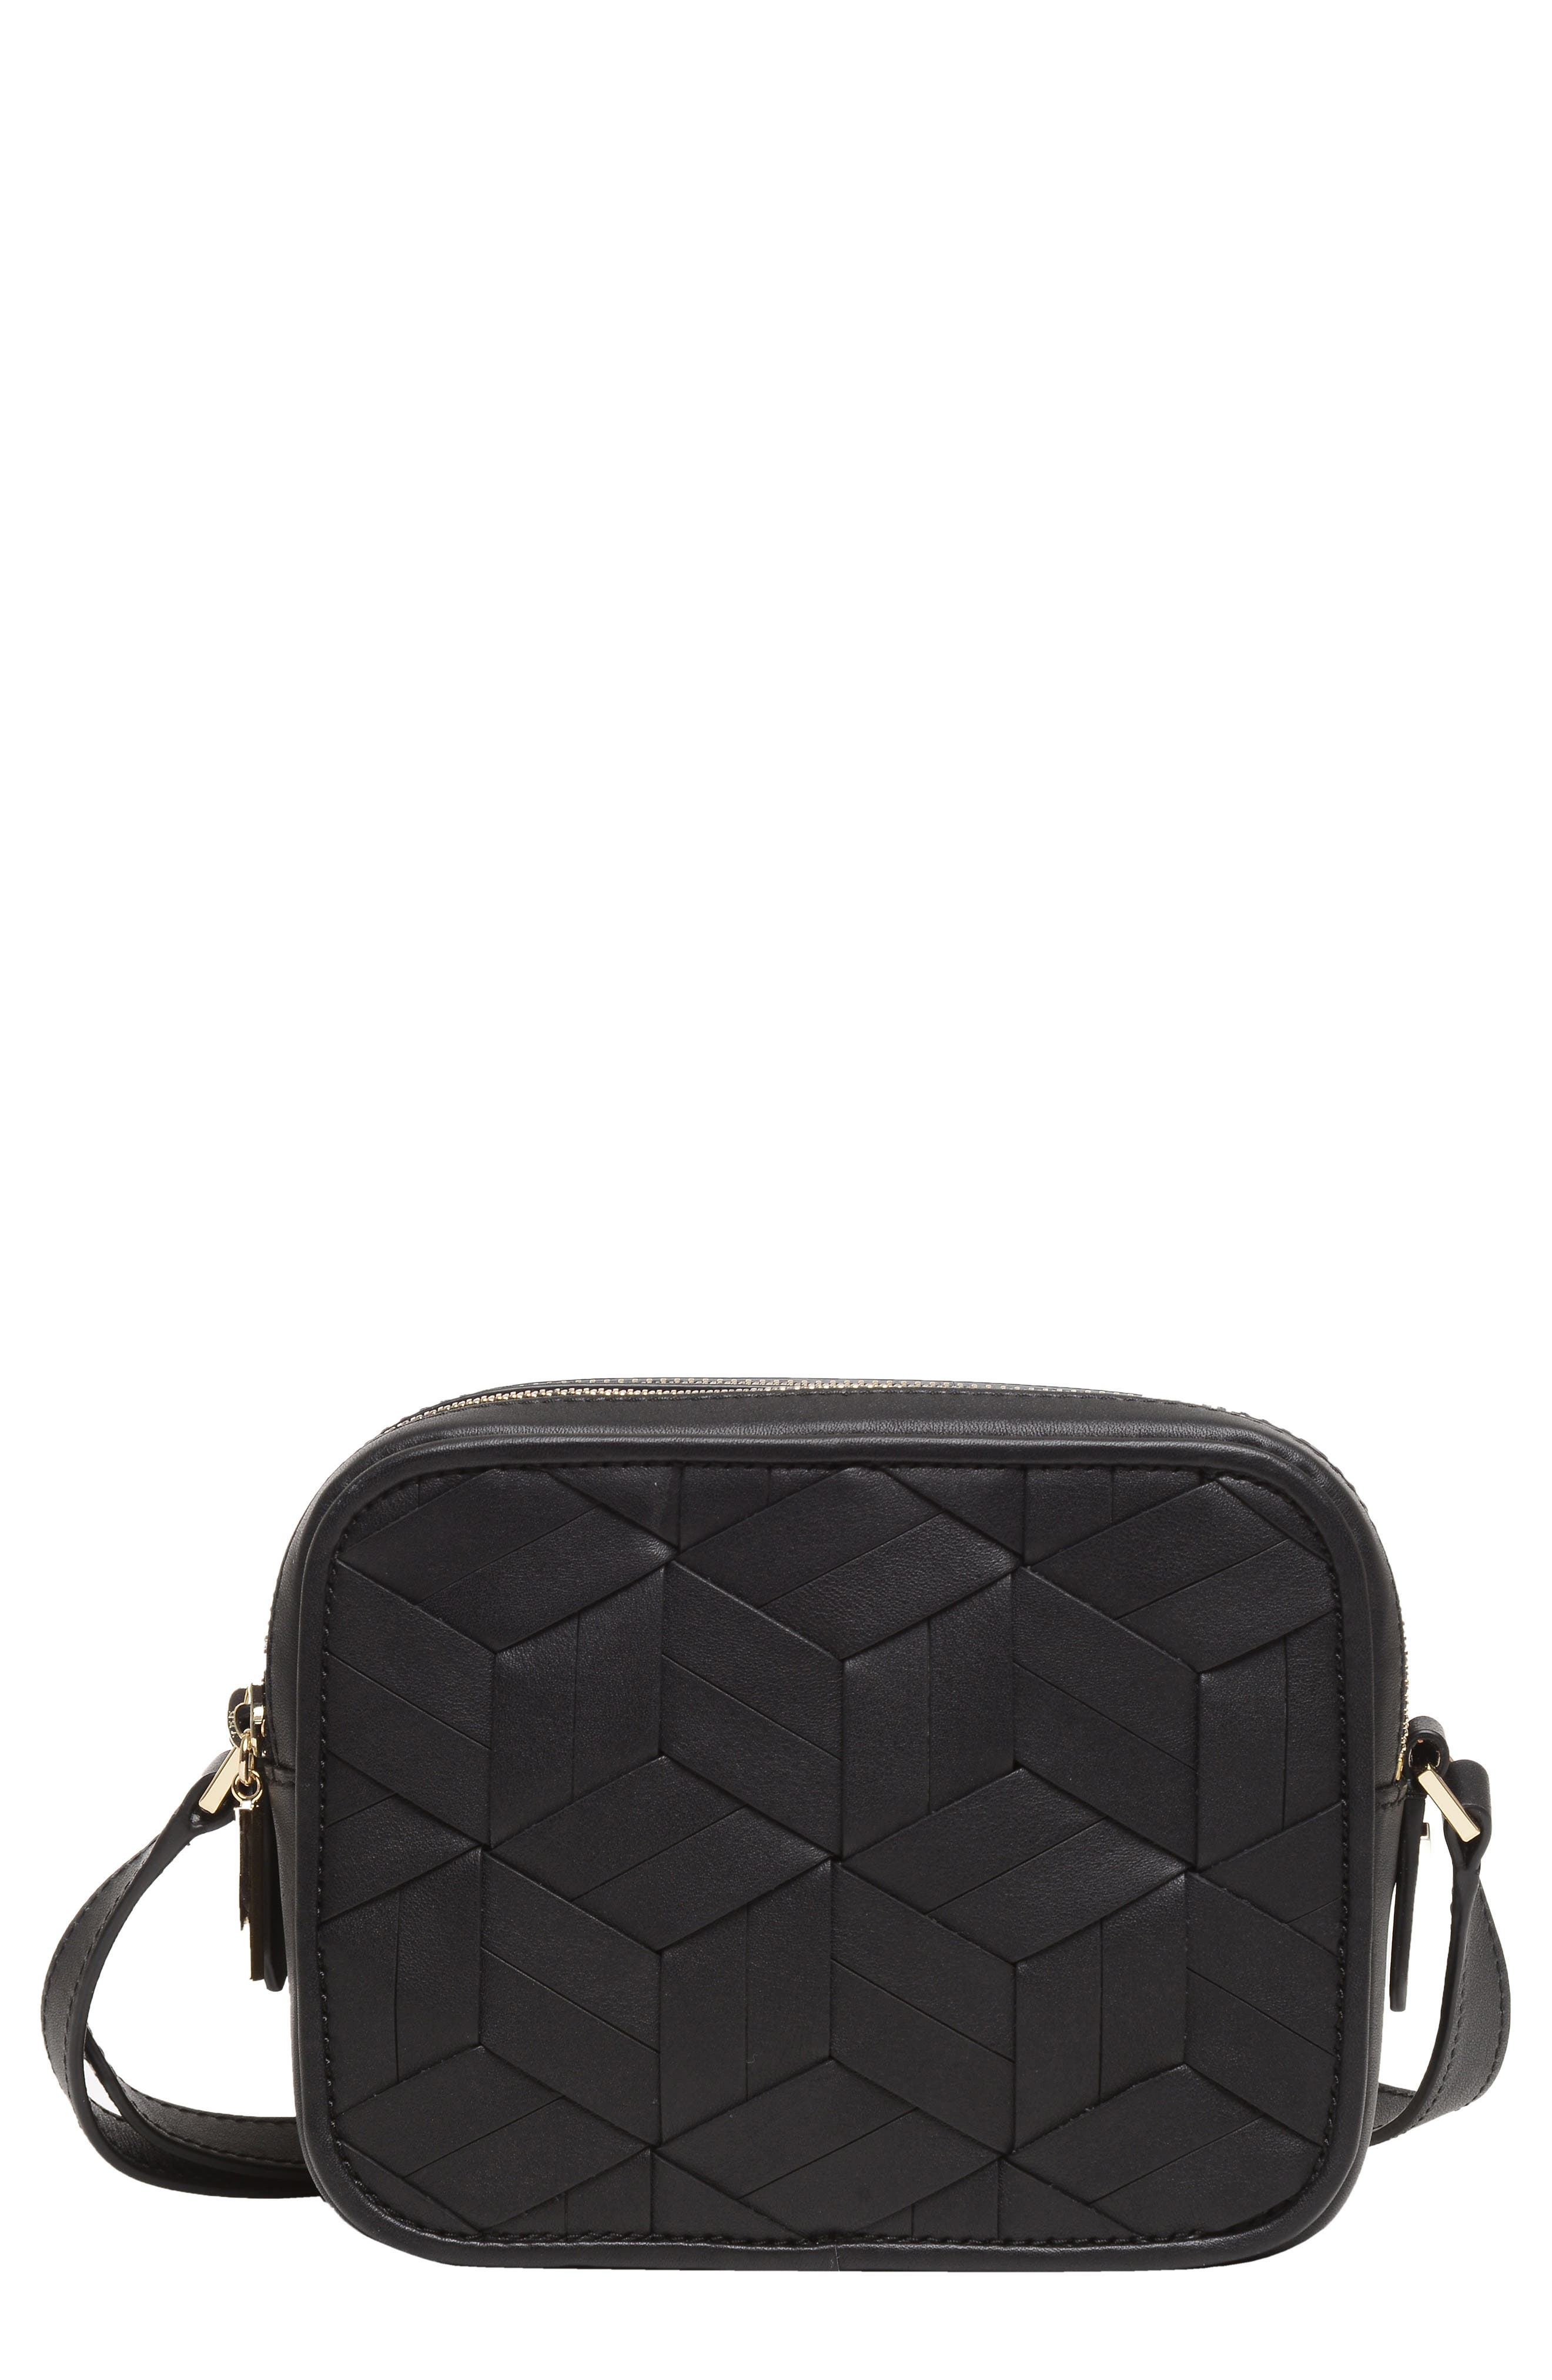 WELDEN EXPLORER WOVEN LEATHER CAMERA BAG - BLACK